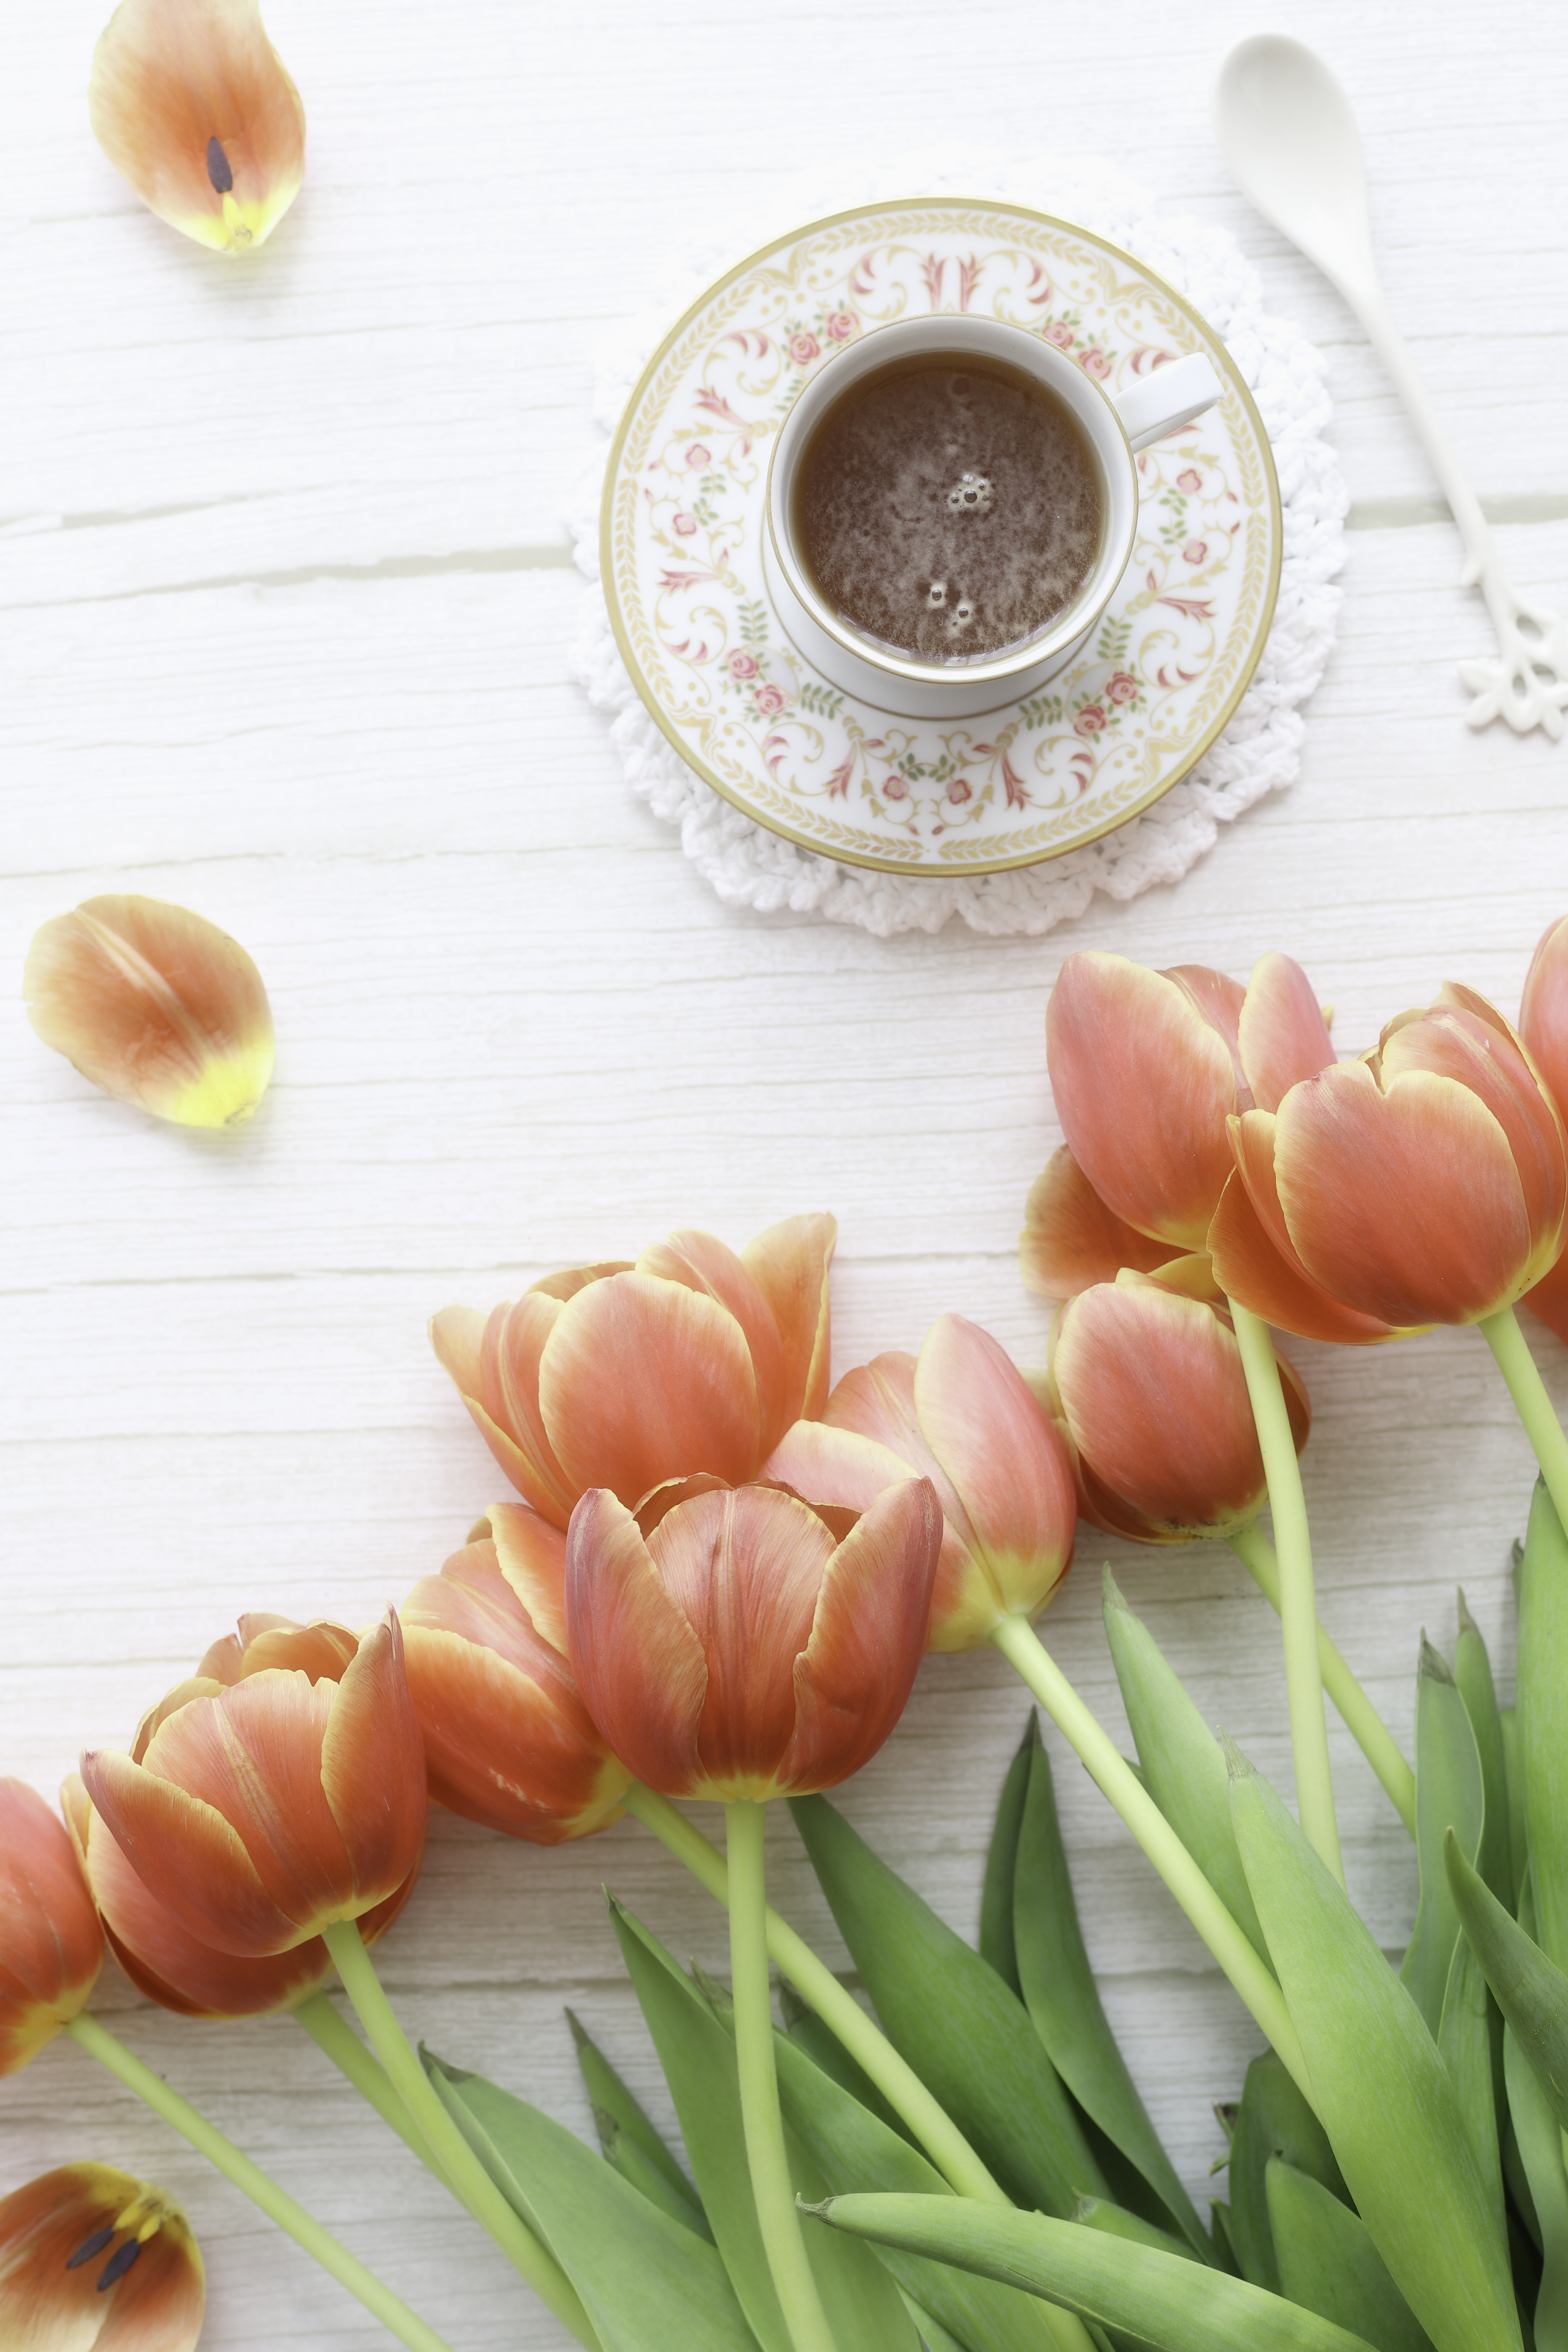 Tea and tulips - delimoon.com